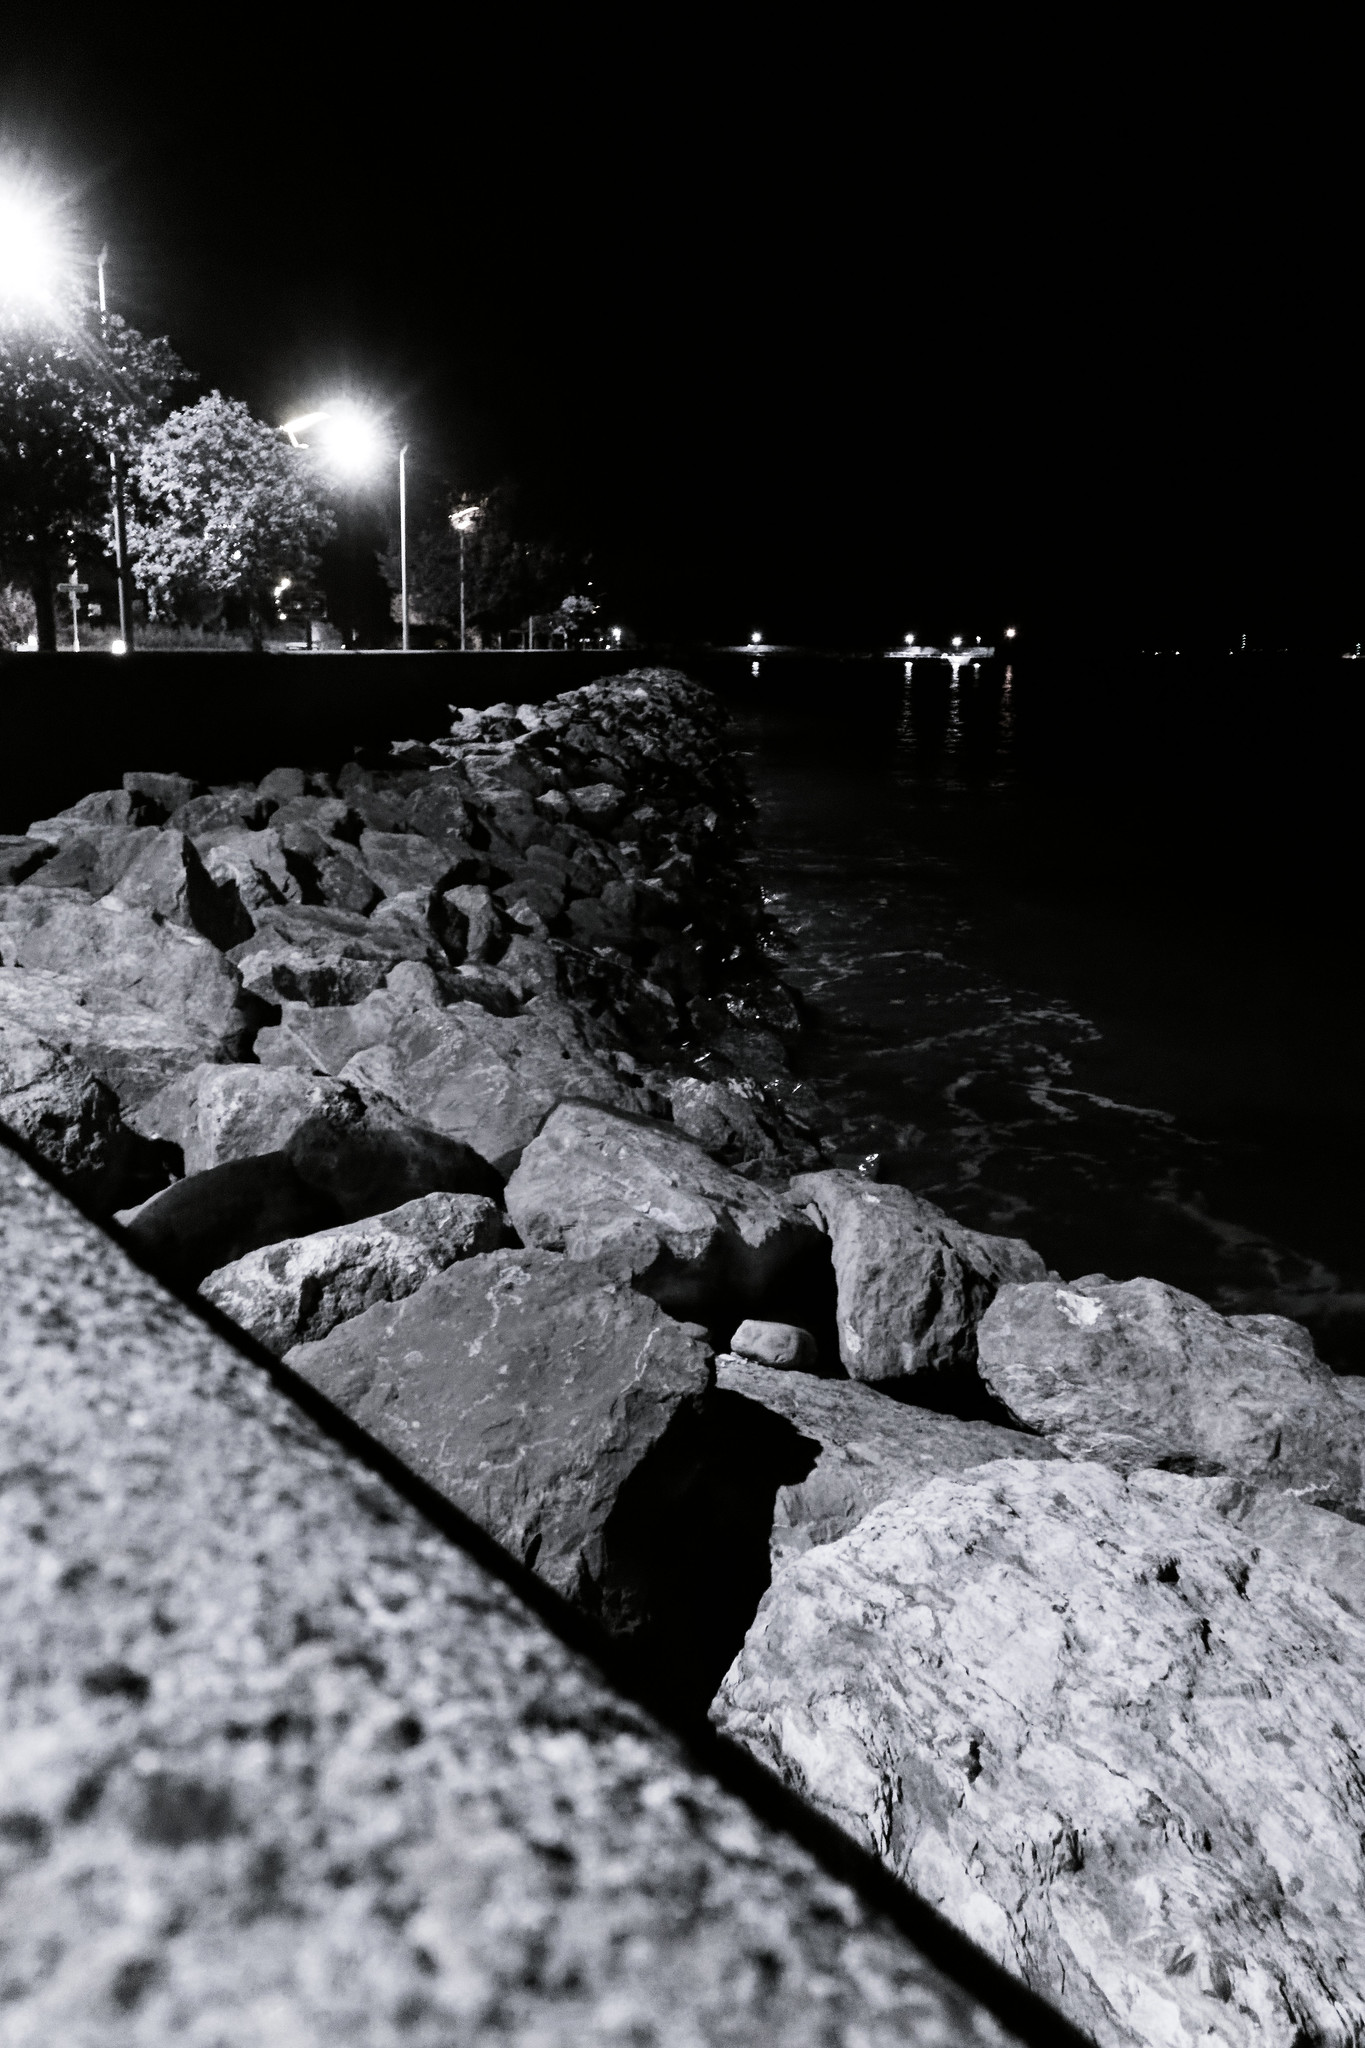 Sea Wall By Night